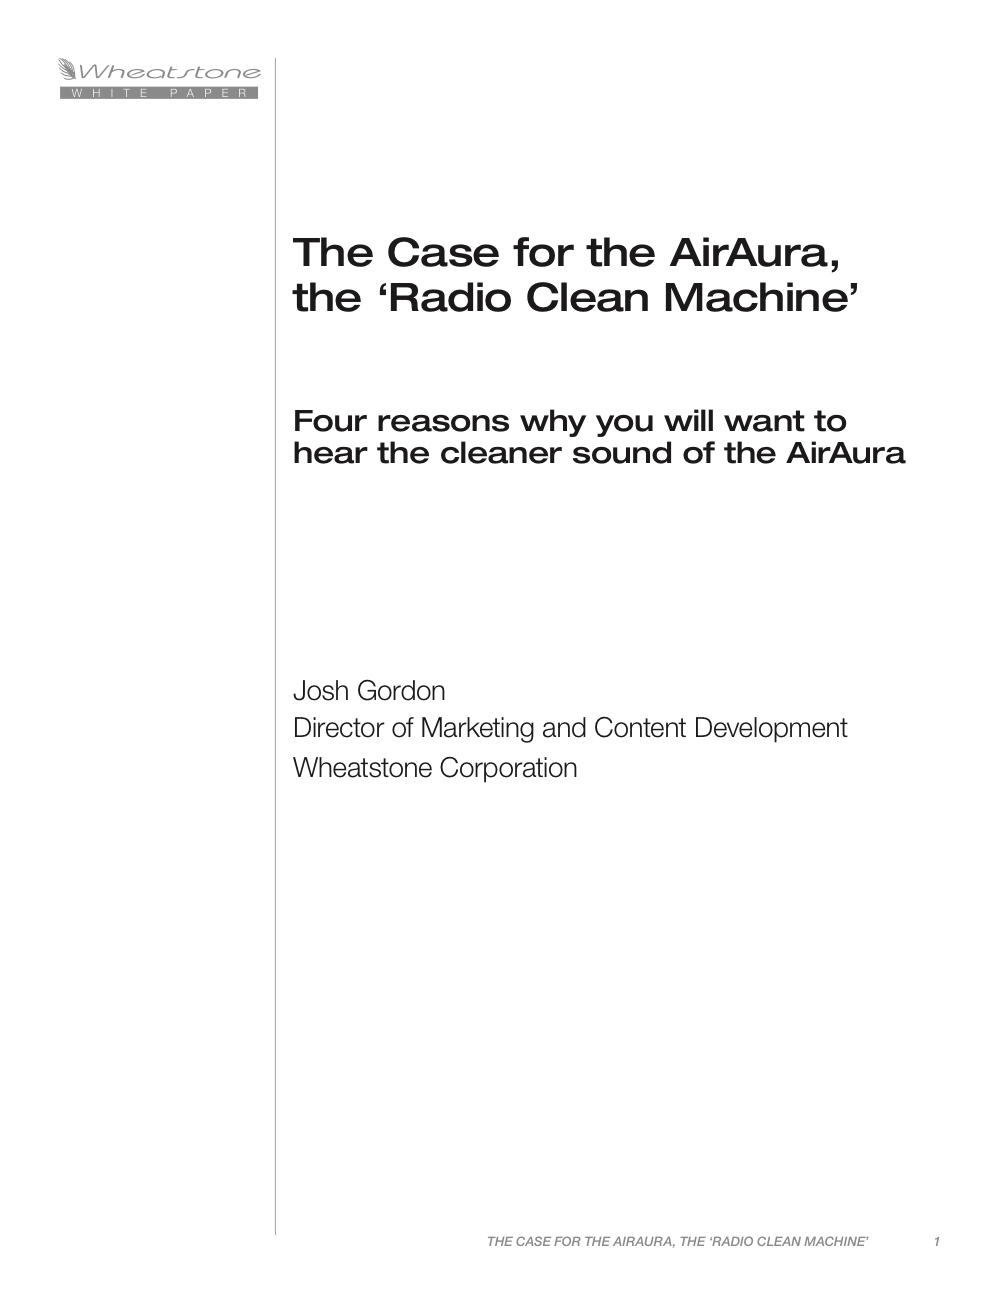 AirAura: The Case for the Clean Machine White Paper